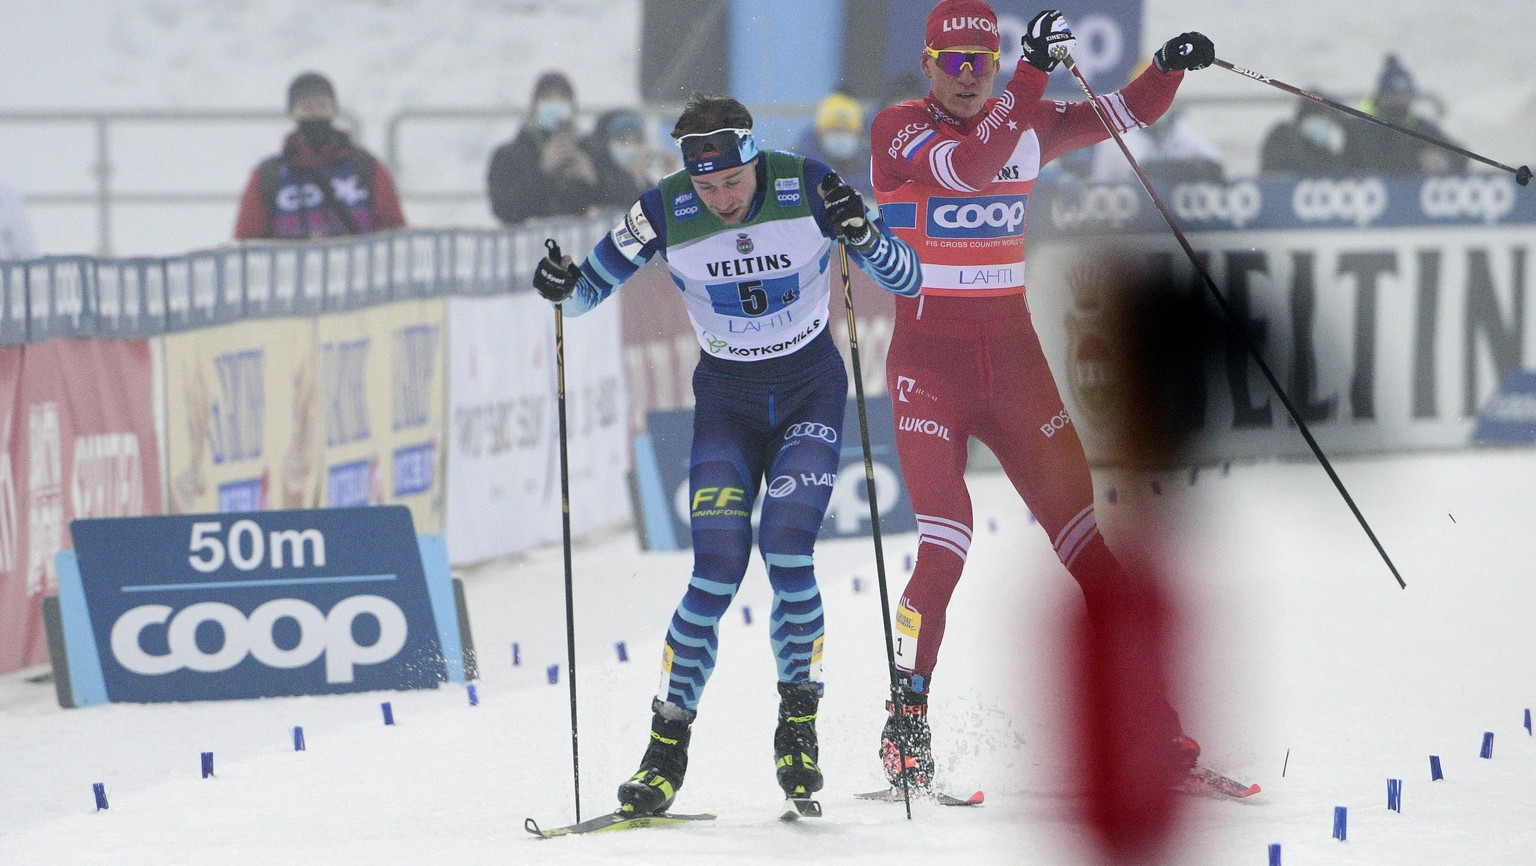 Russia's Alexander Bolshunov, right, and Joni Maki of Finland during the final meters of the men's Cross Country relay 4 x 7.5km at the FIS World Cup Lahti Ski Games in Lahti, Finland, Sunday Jan. 24, 2021. (Markku Ulander/Lehtikuva via AP)